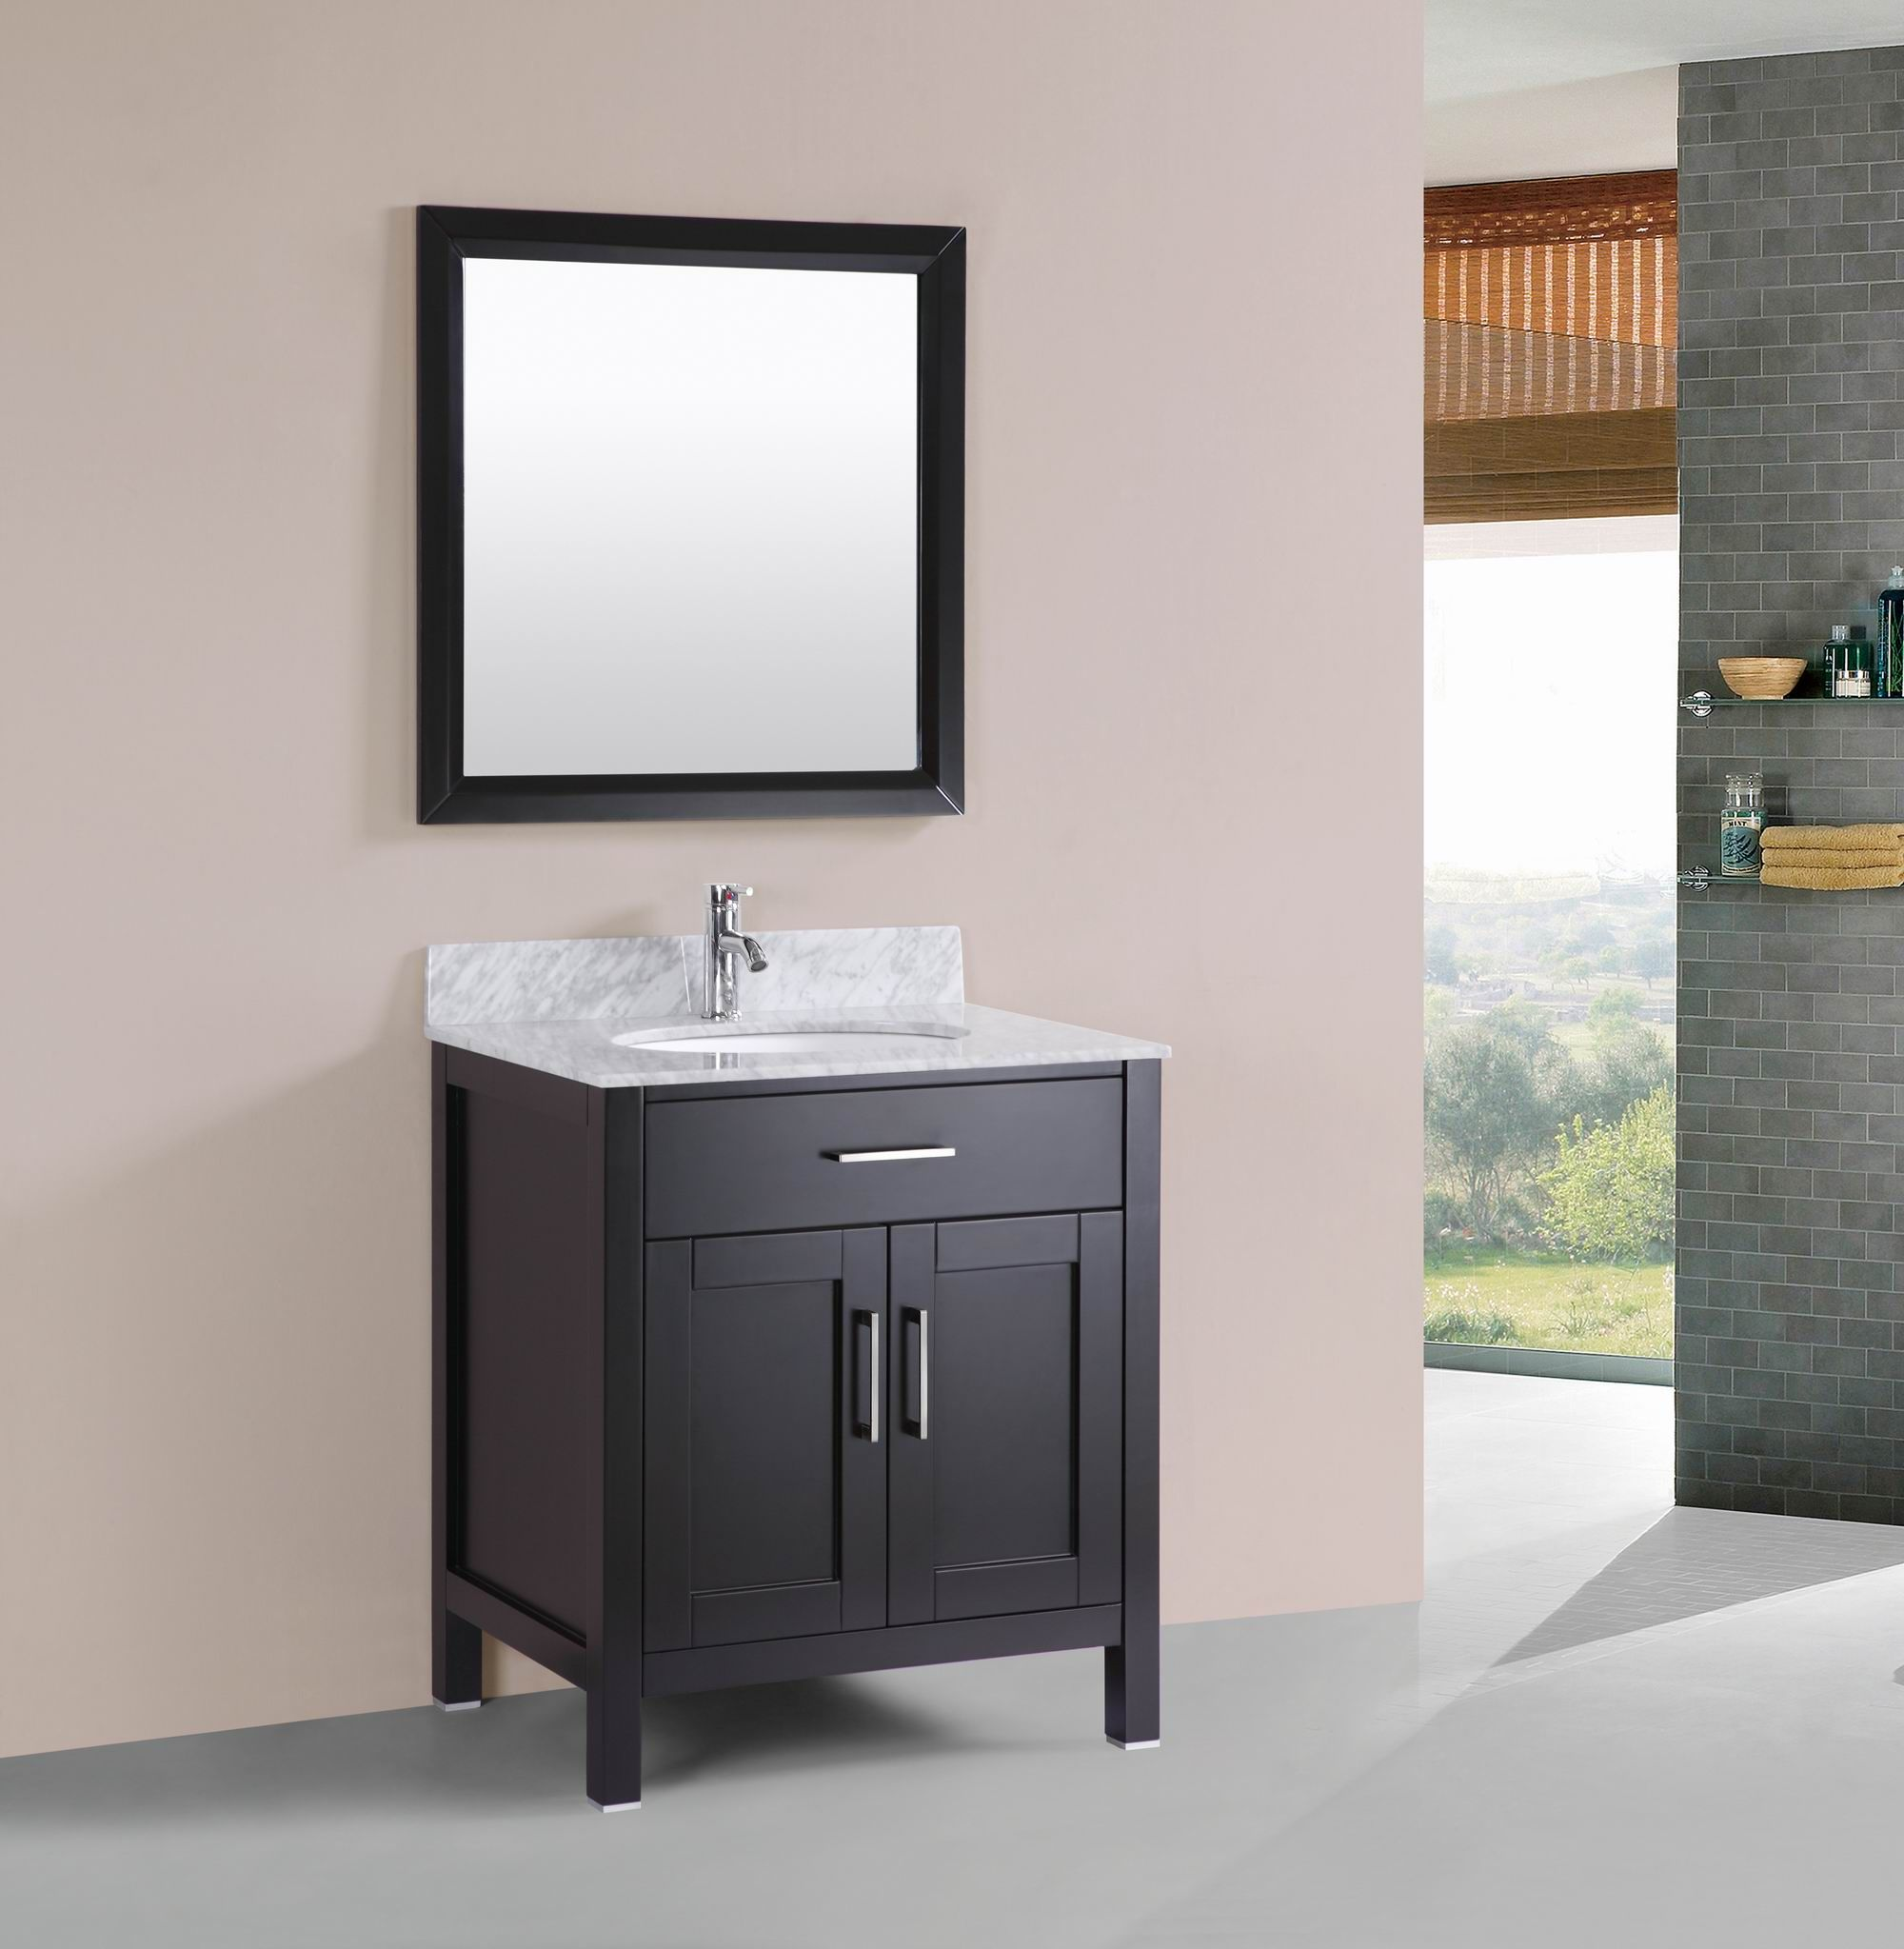 30 Inch Belvedere Freestanding Modern Espresso Brown Bathroom Inspiration Bathroom Vanity 30 Inch Inspiration